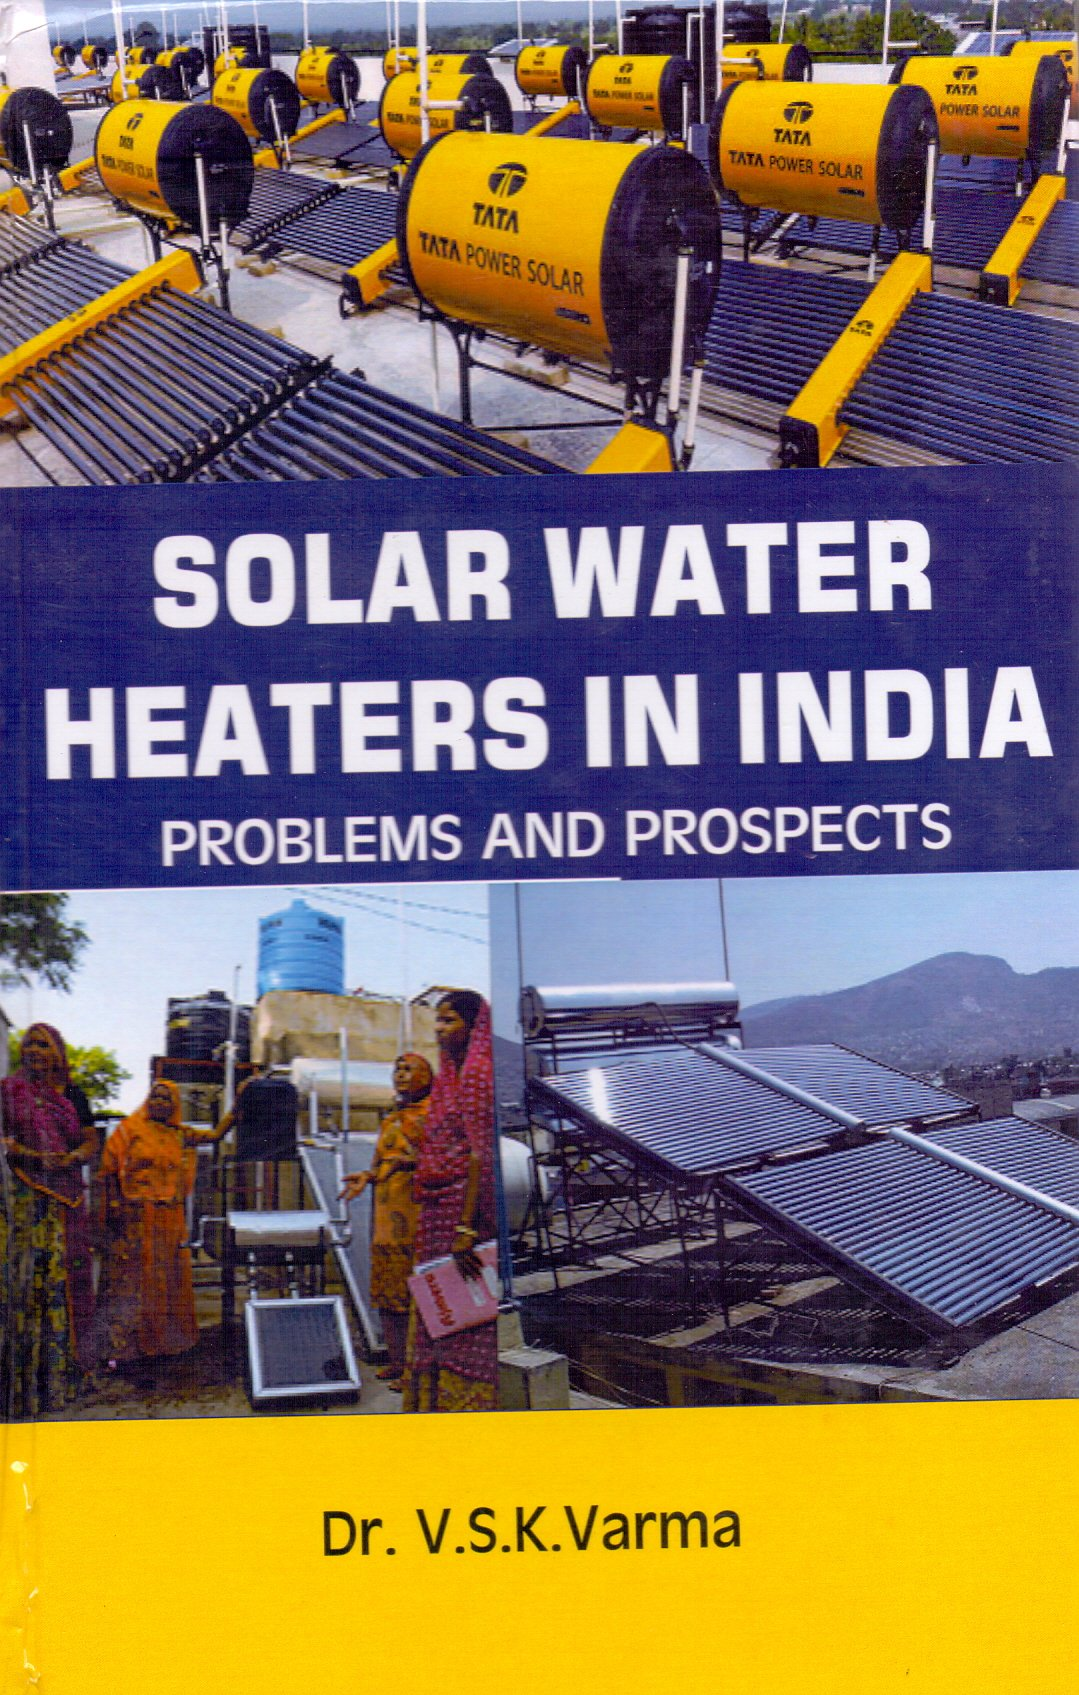 Solar Water Heaters in India: Problems and Prospects